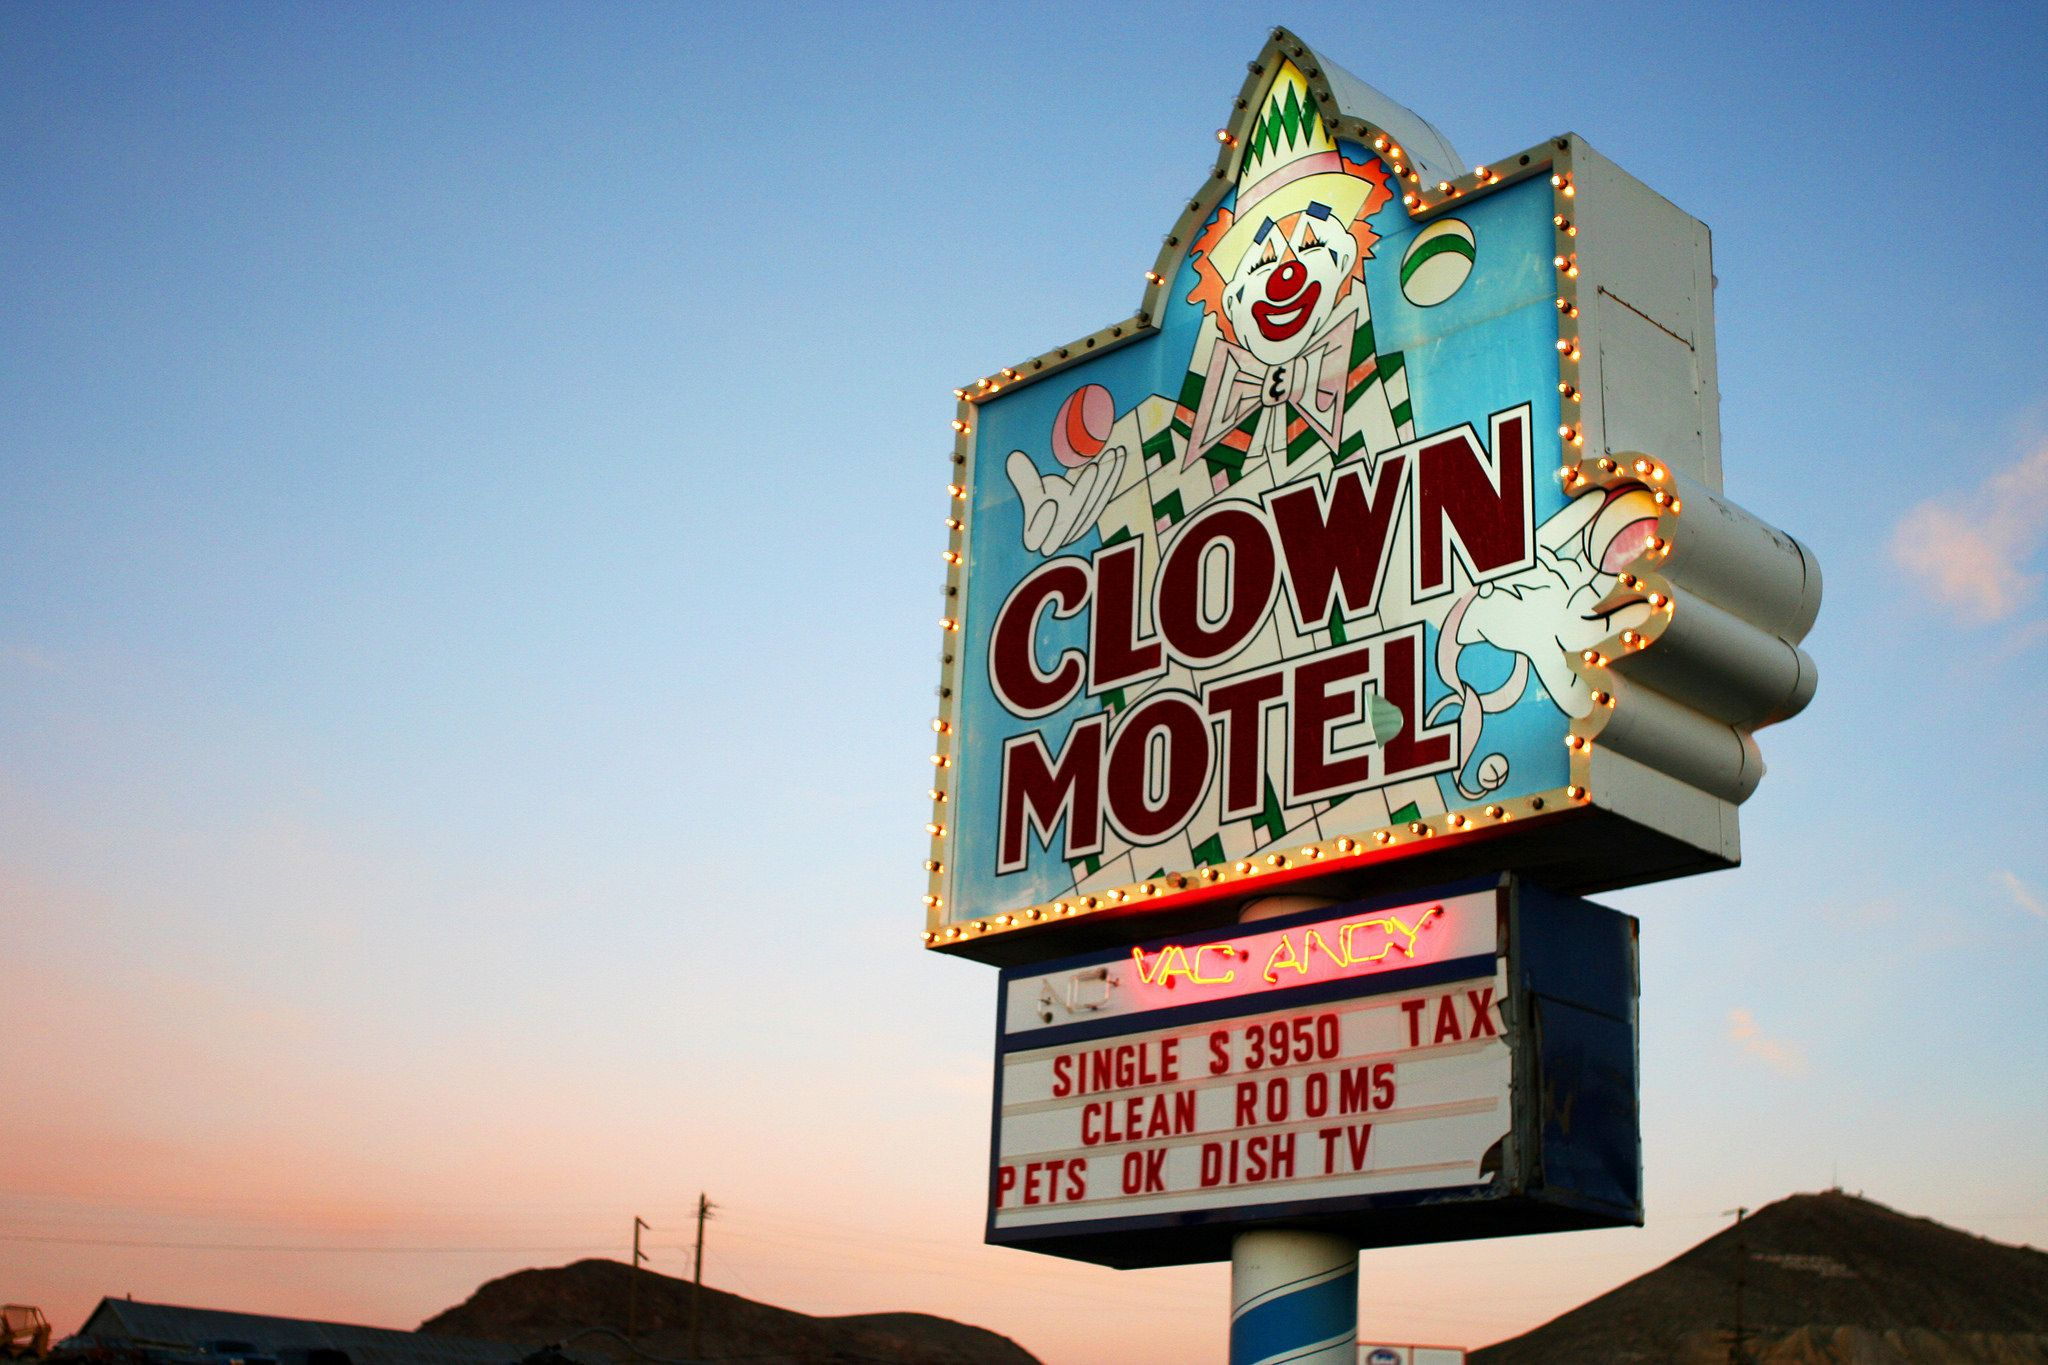 This Creepy Clown Motel Can Now Be Yours